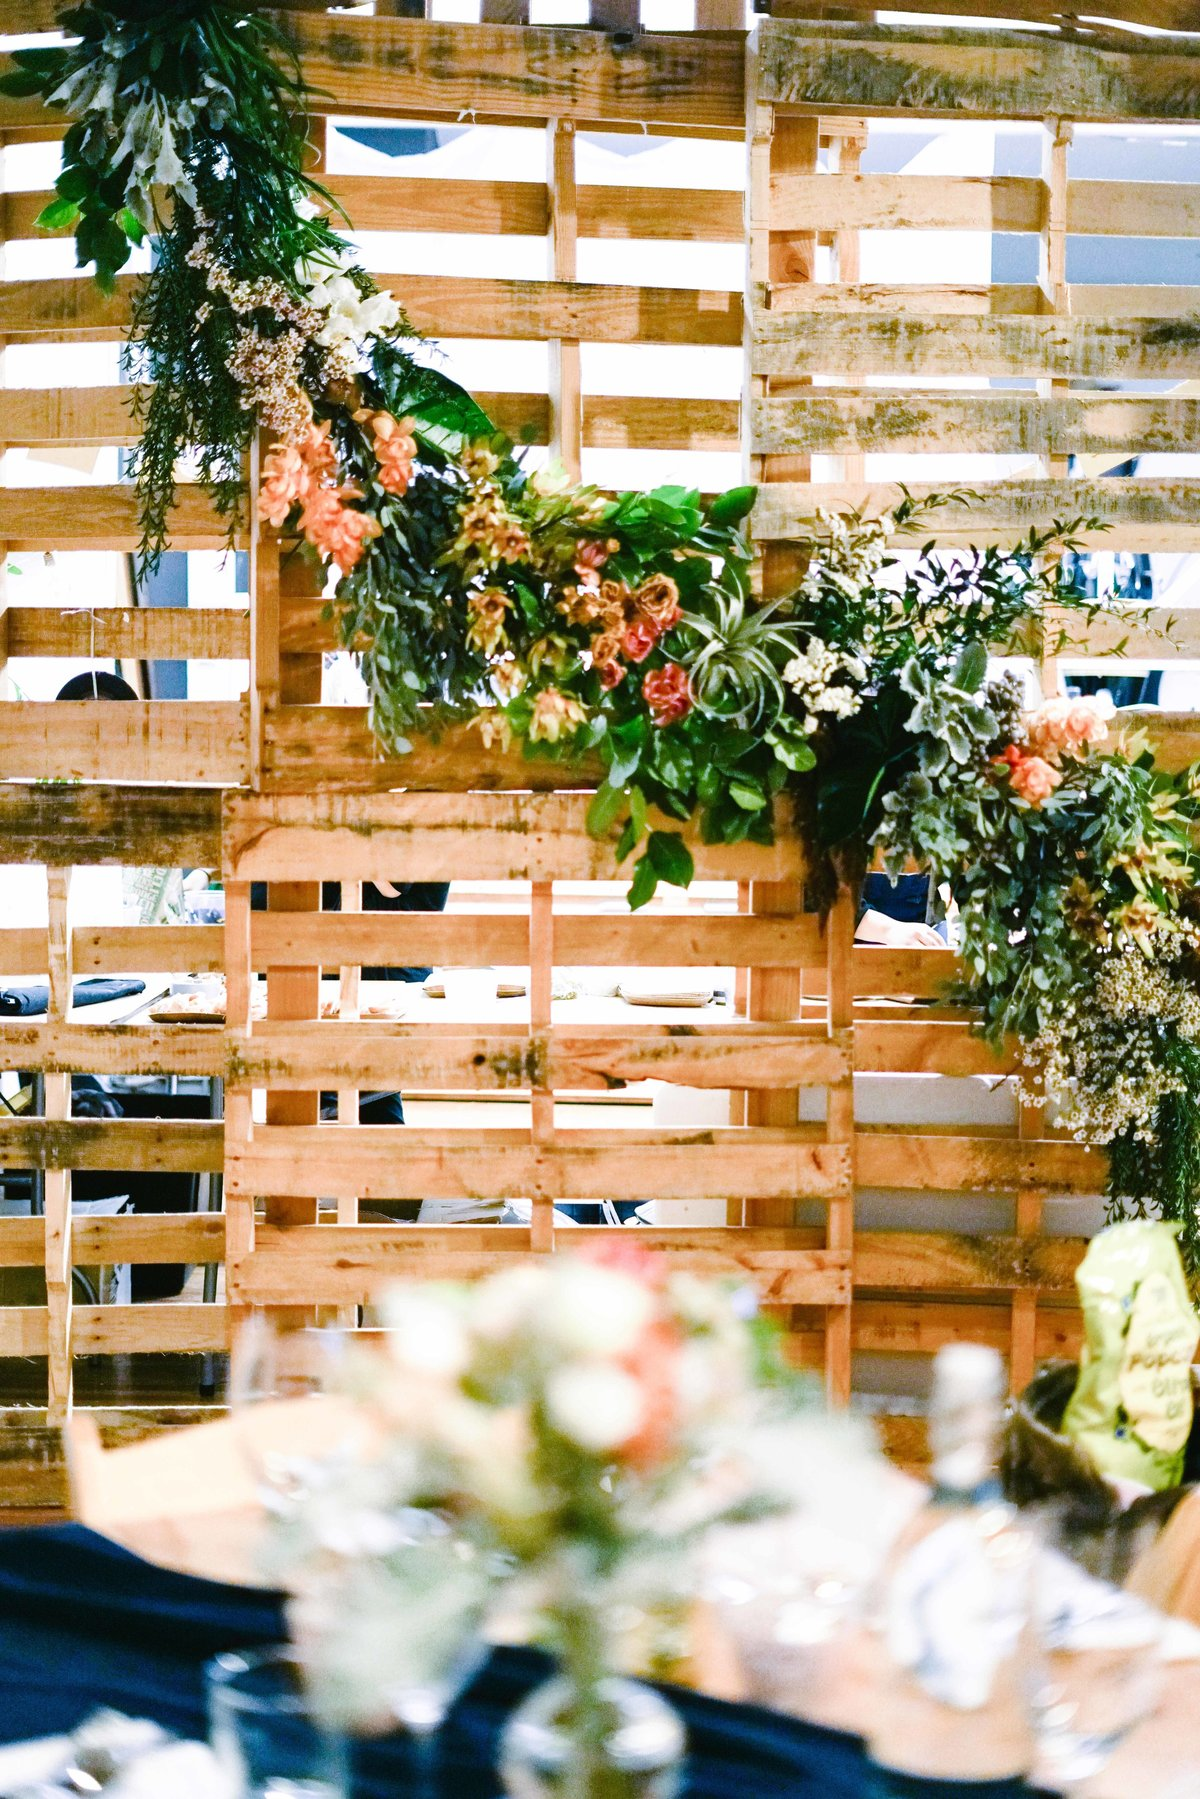 Dinner party backdrop using wood pallet and greenery garland with flowers